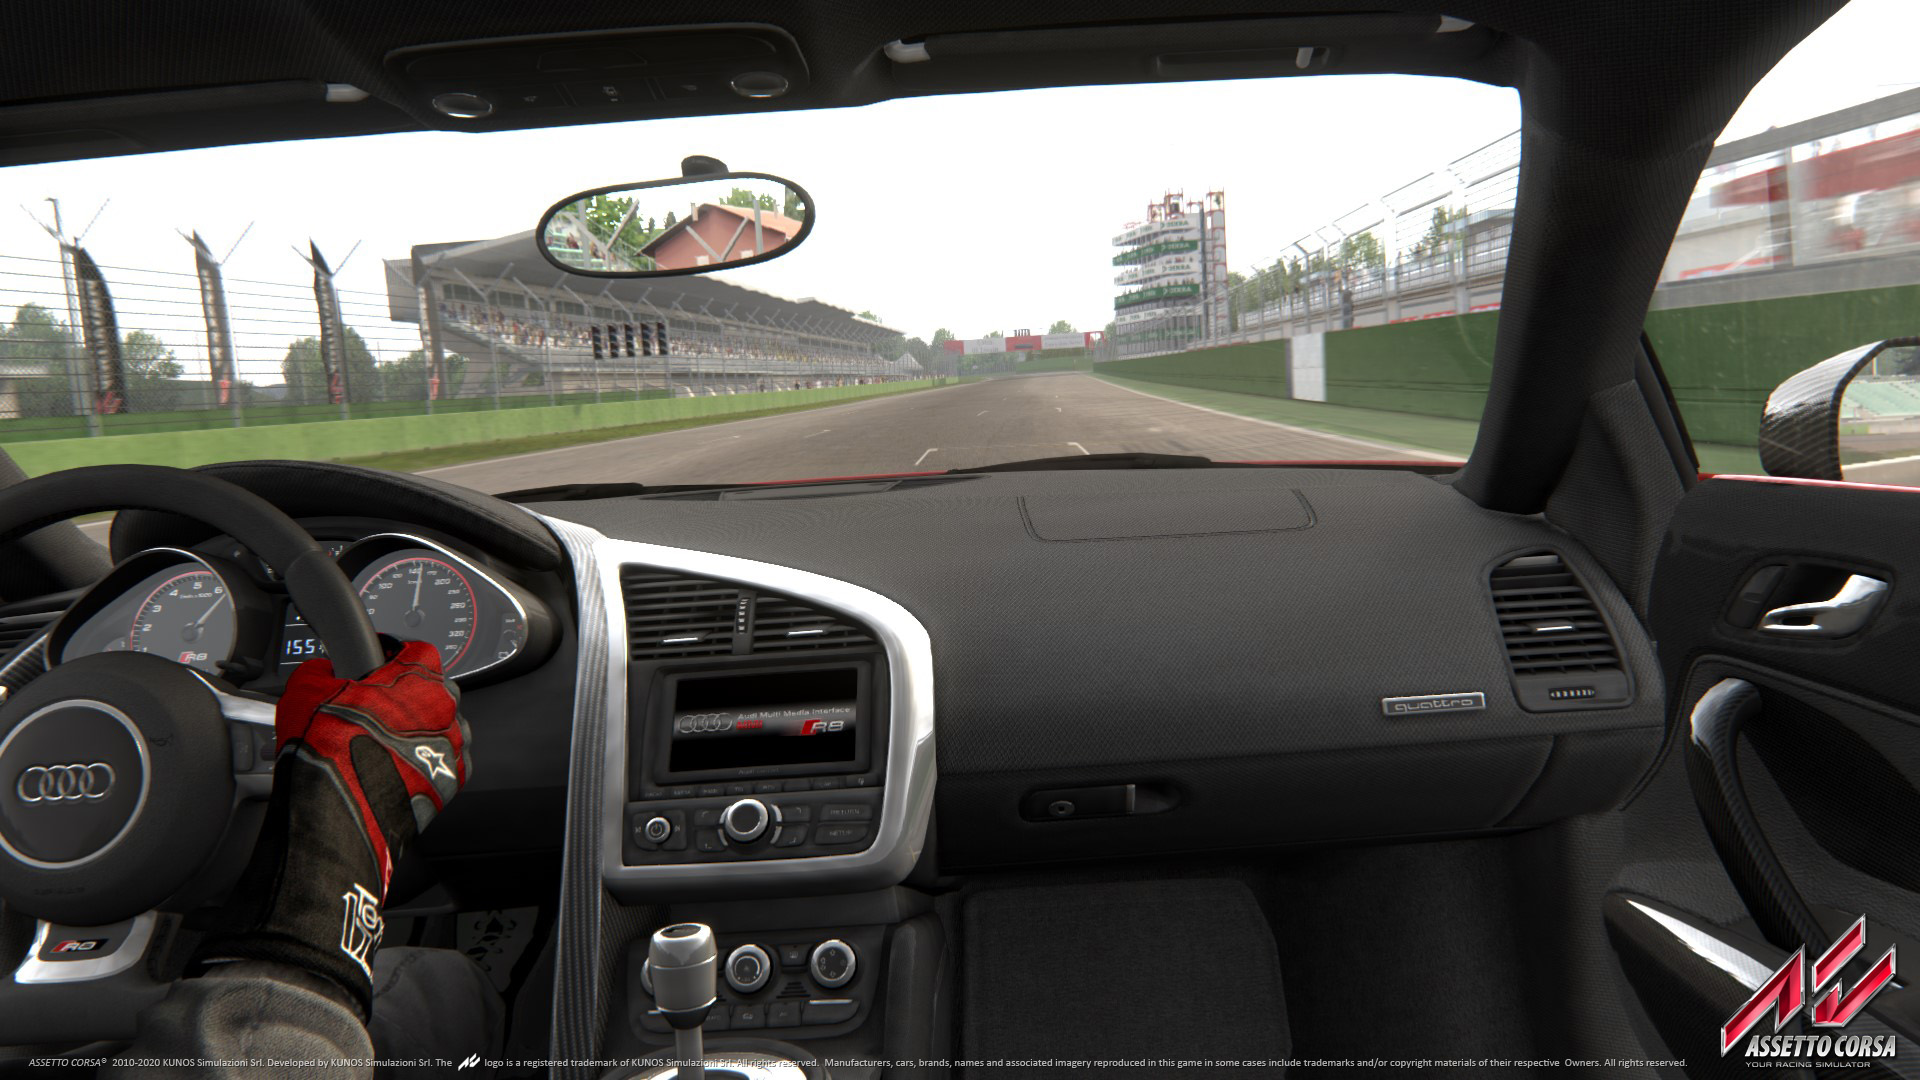 Assetto Corsa (Steam Gift RU+CIS)